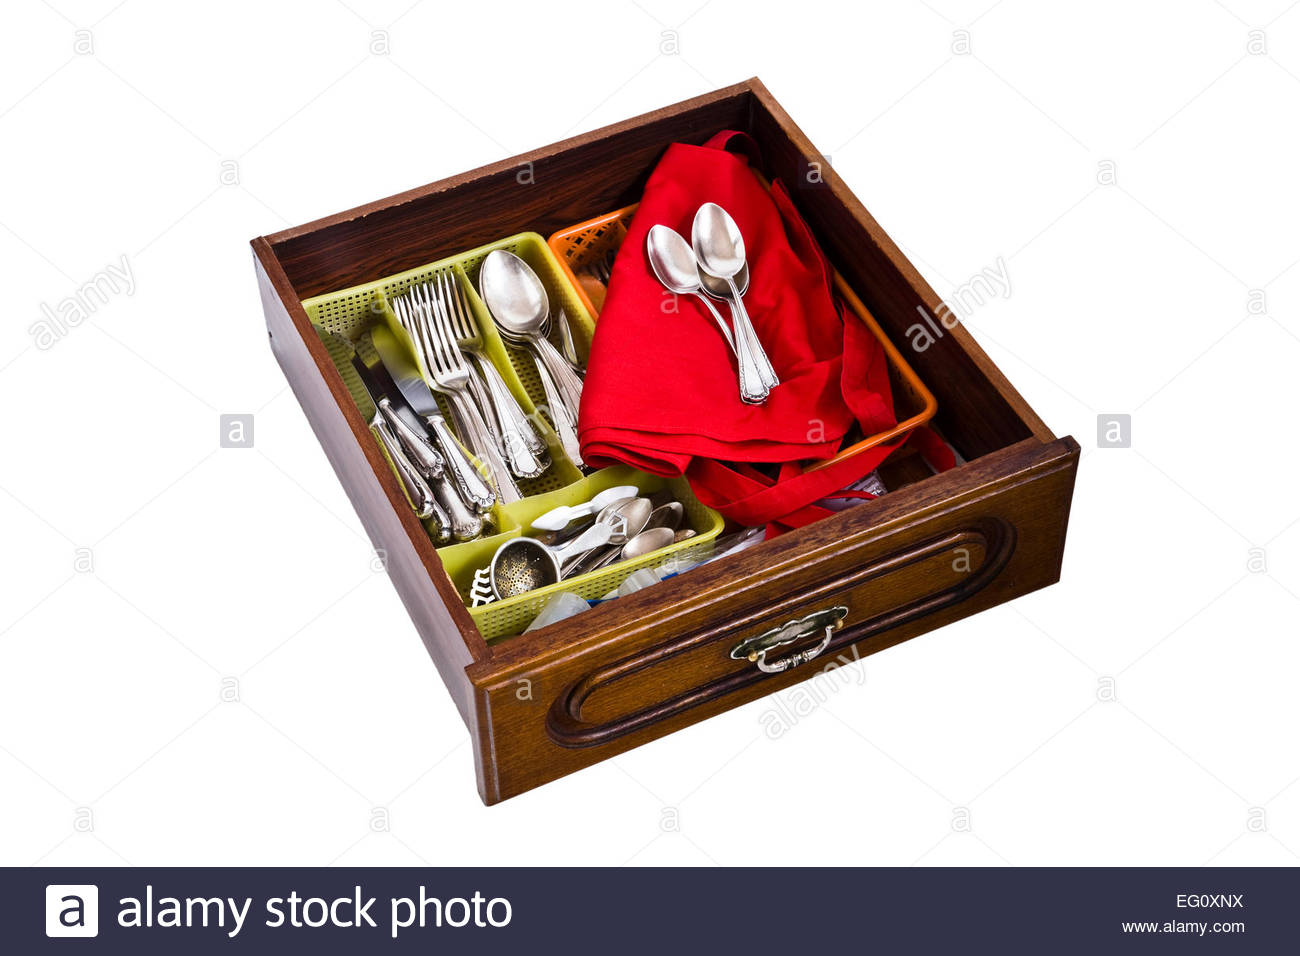 Cutlery Drawer Drawers Stock Photos & Cutlery Drawer Drawers